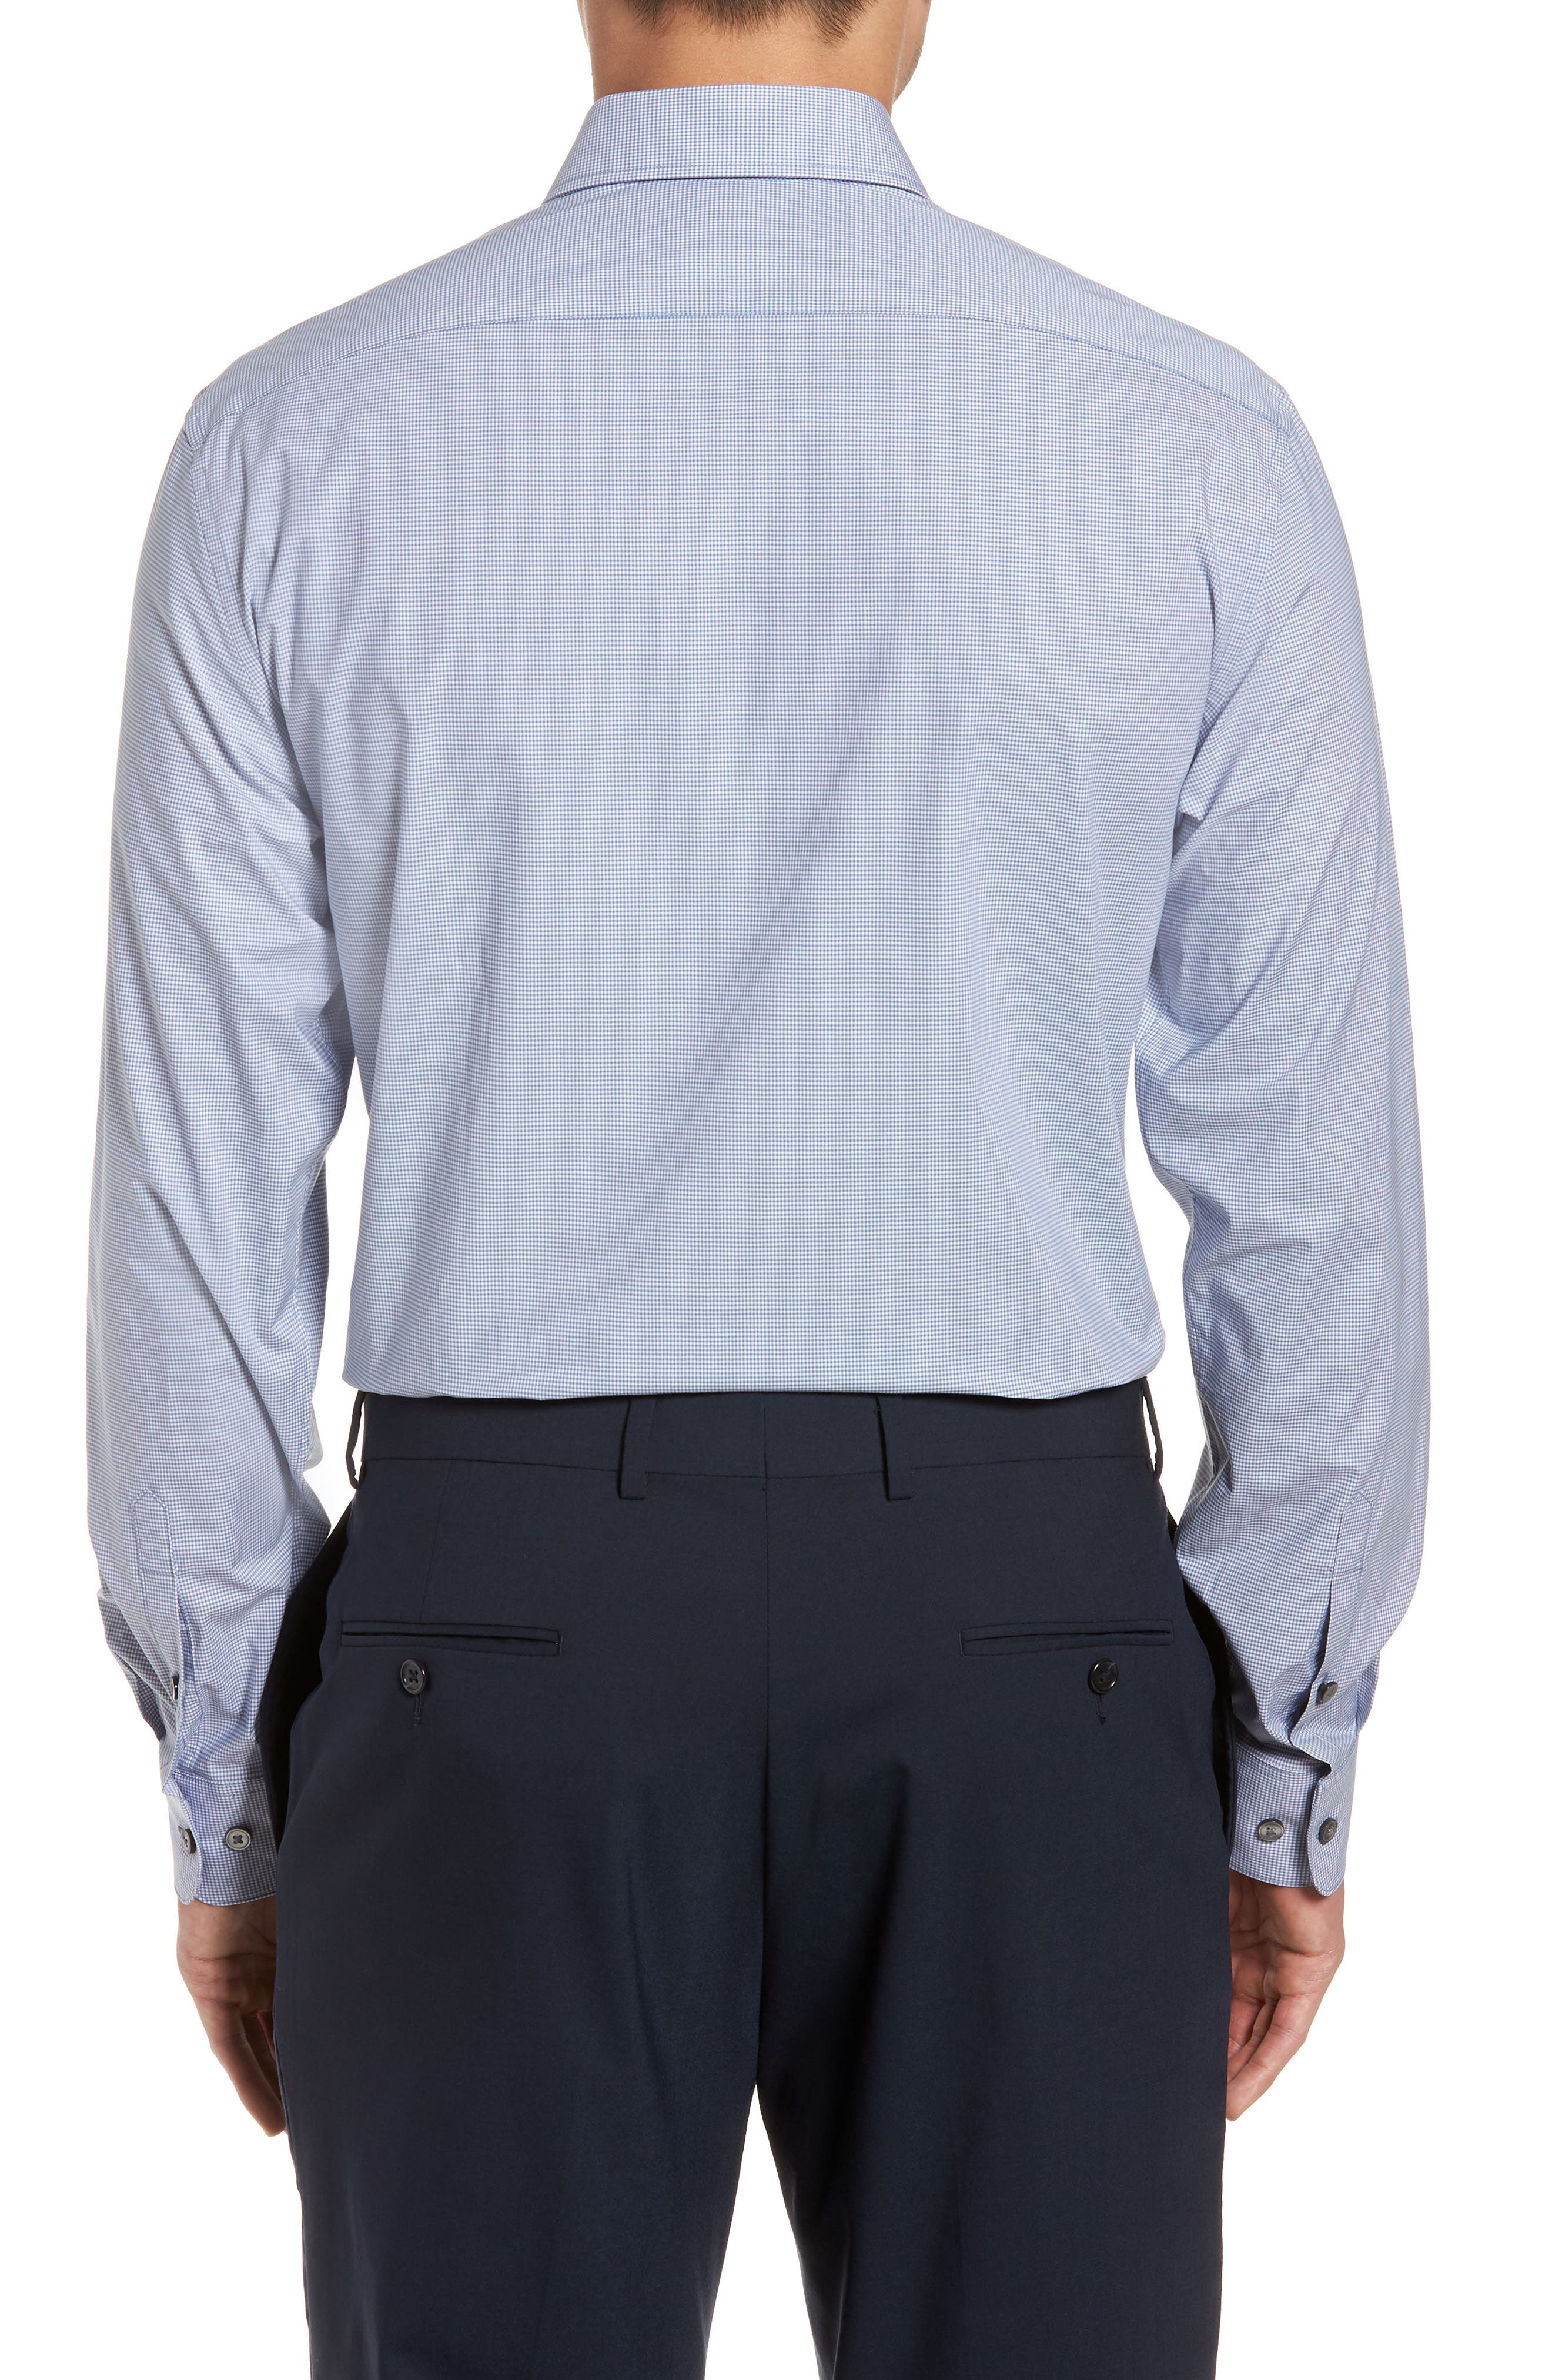 Regular Fit Stretch Microcheck Dress Shirt,                             Alternate thumbnail 3, color,                             DUSTED BLUE